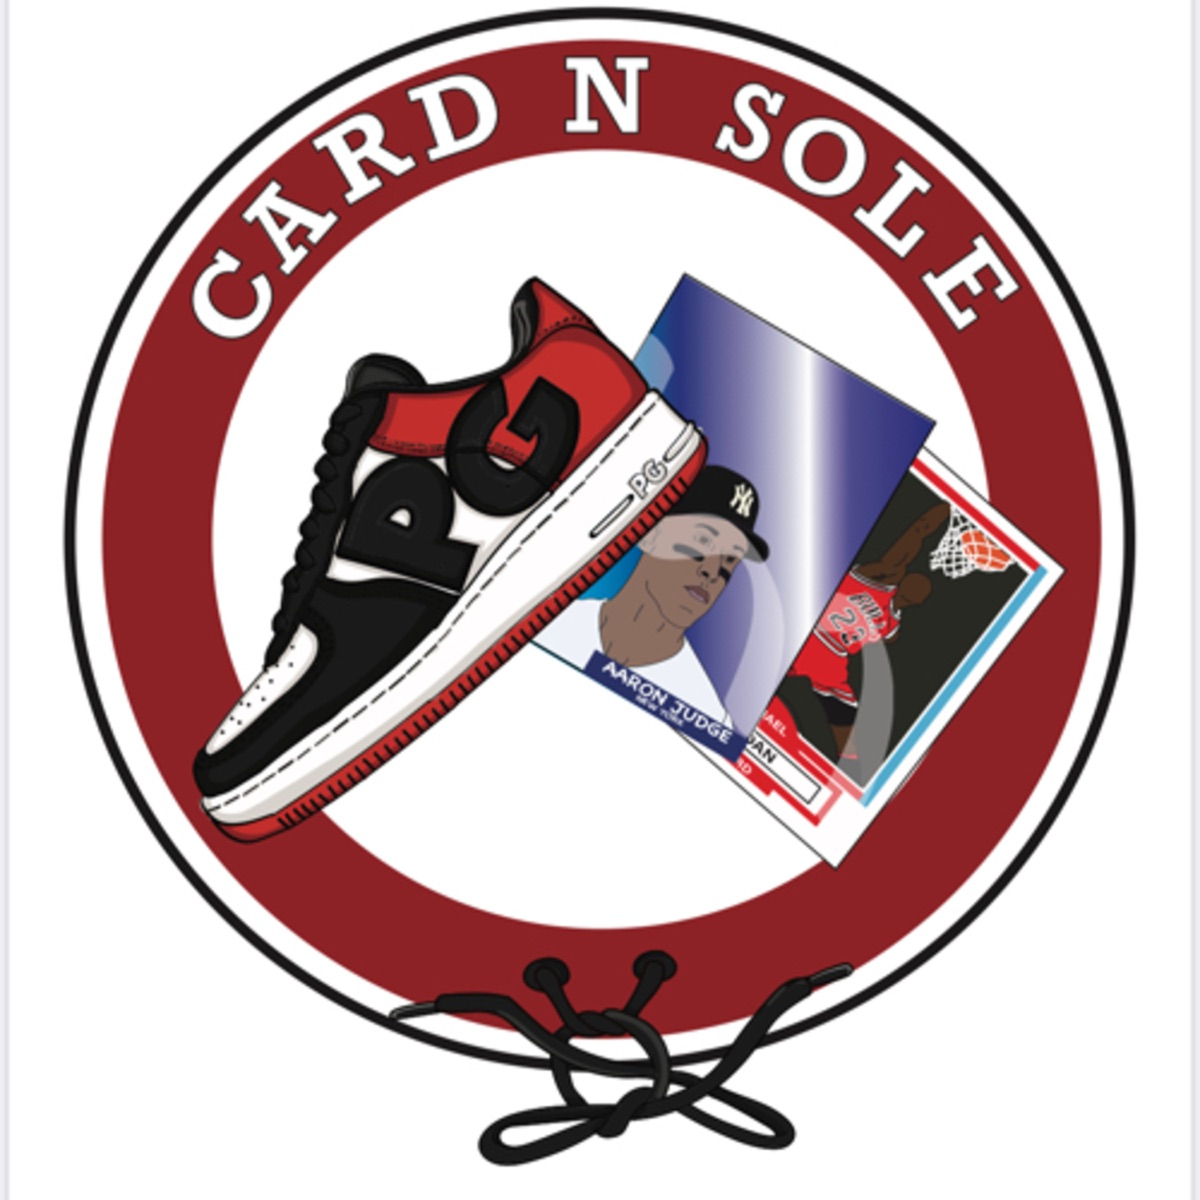 Sports Cards with Card N Sole